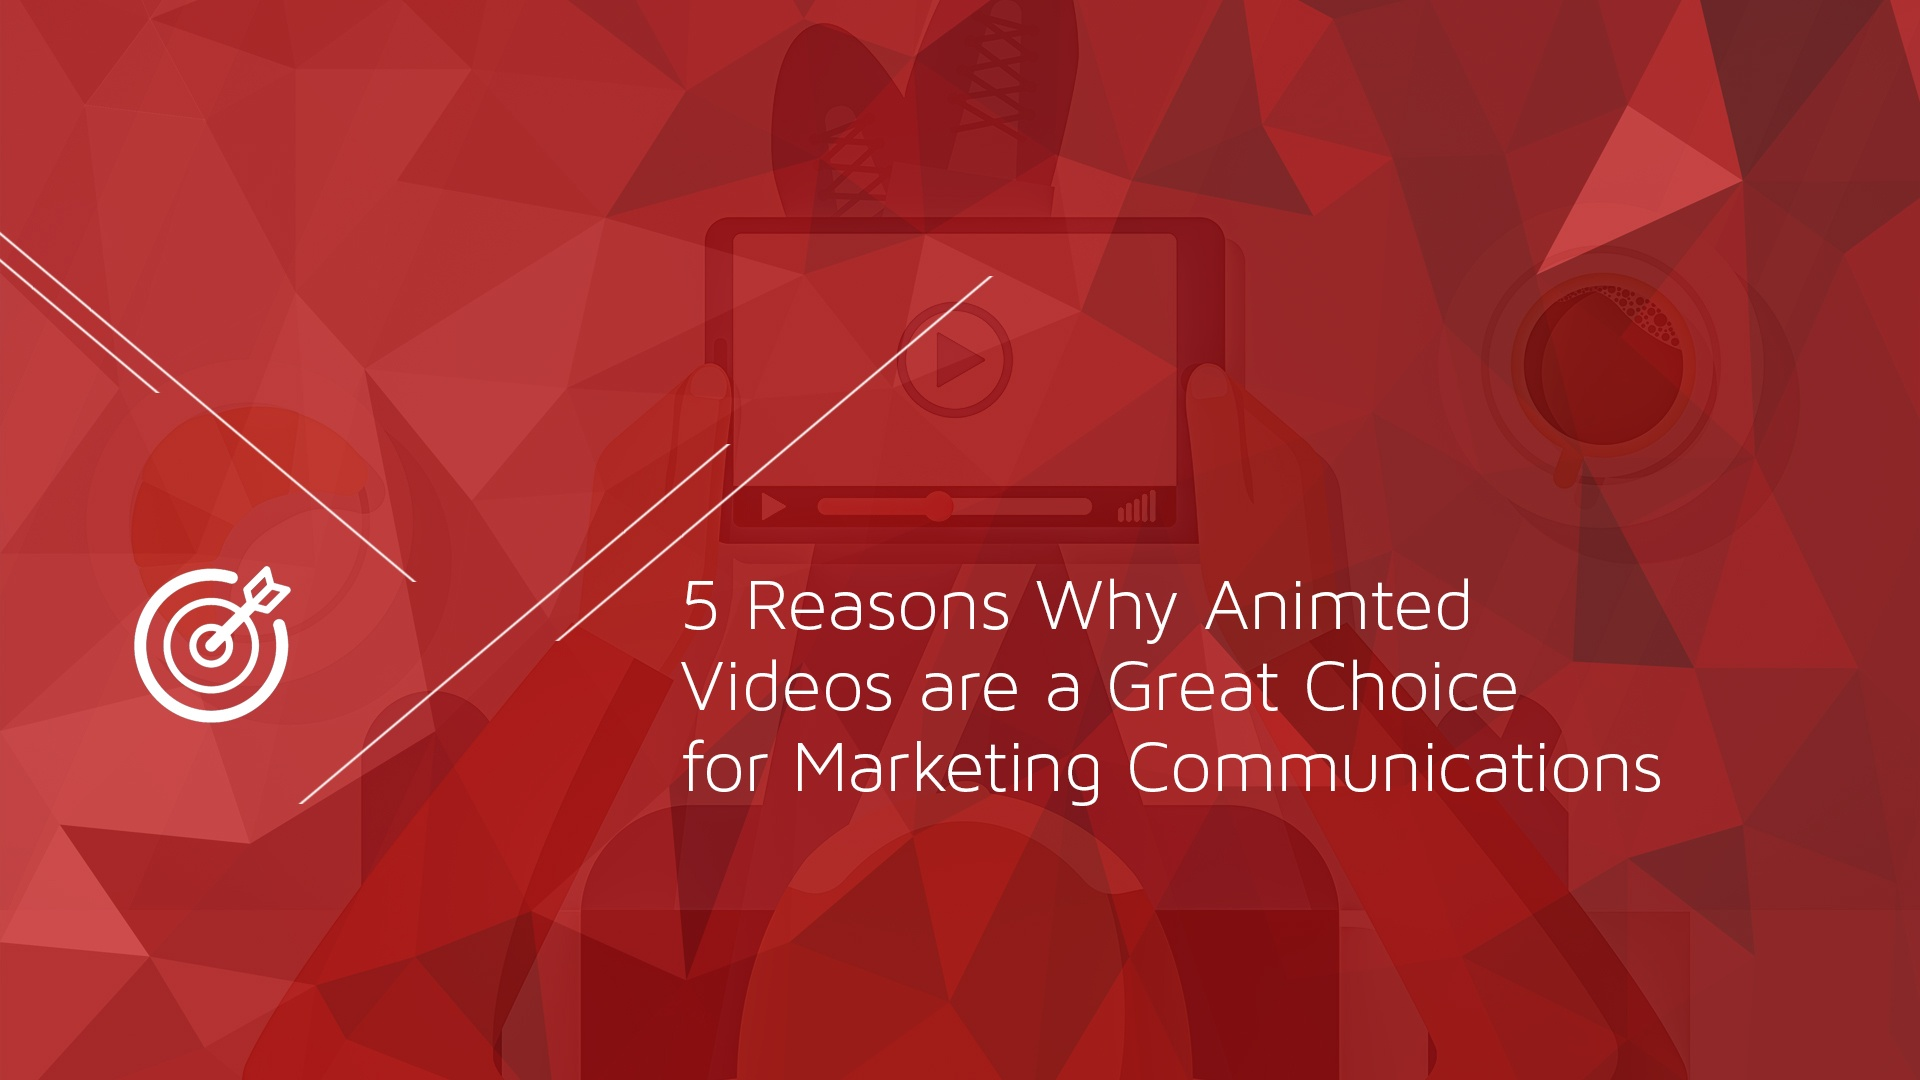 5 compelling reasons why animated videos are perfect for marketing 3 5 reasons why animted videos are a great choice for marketing communications 1 malvernweather Choice Image